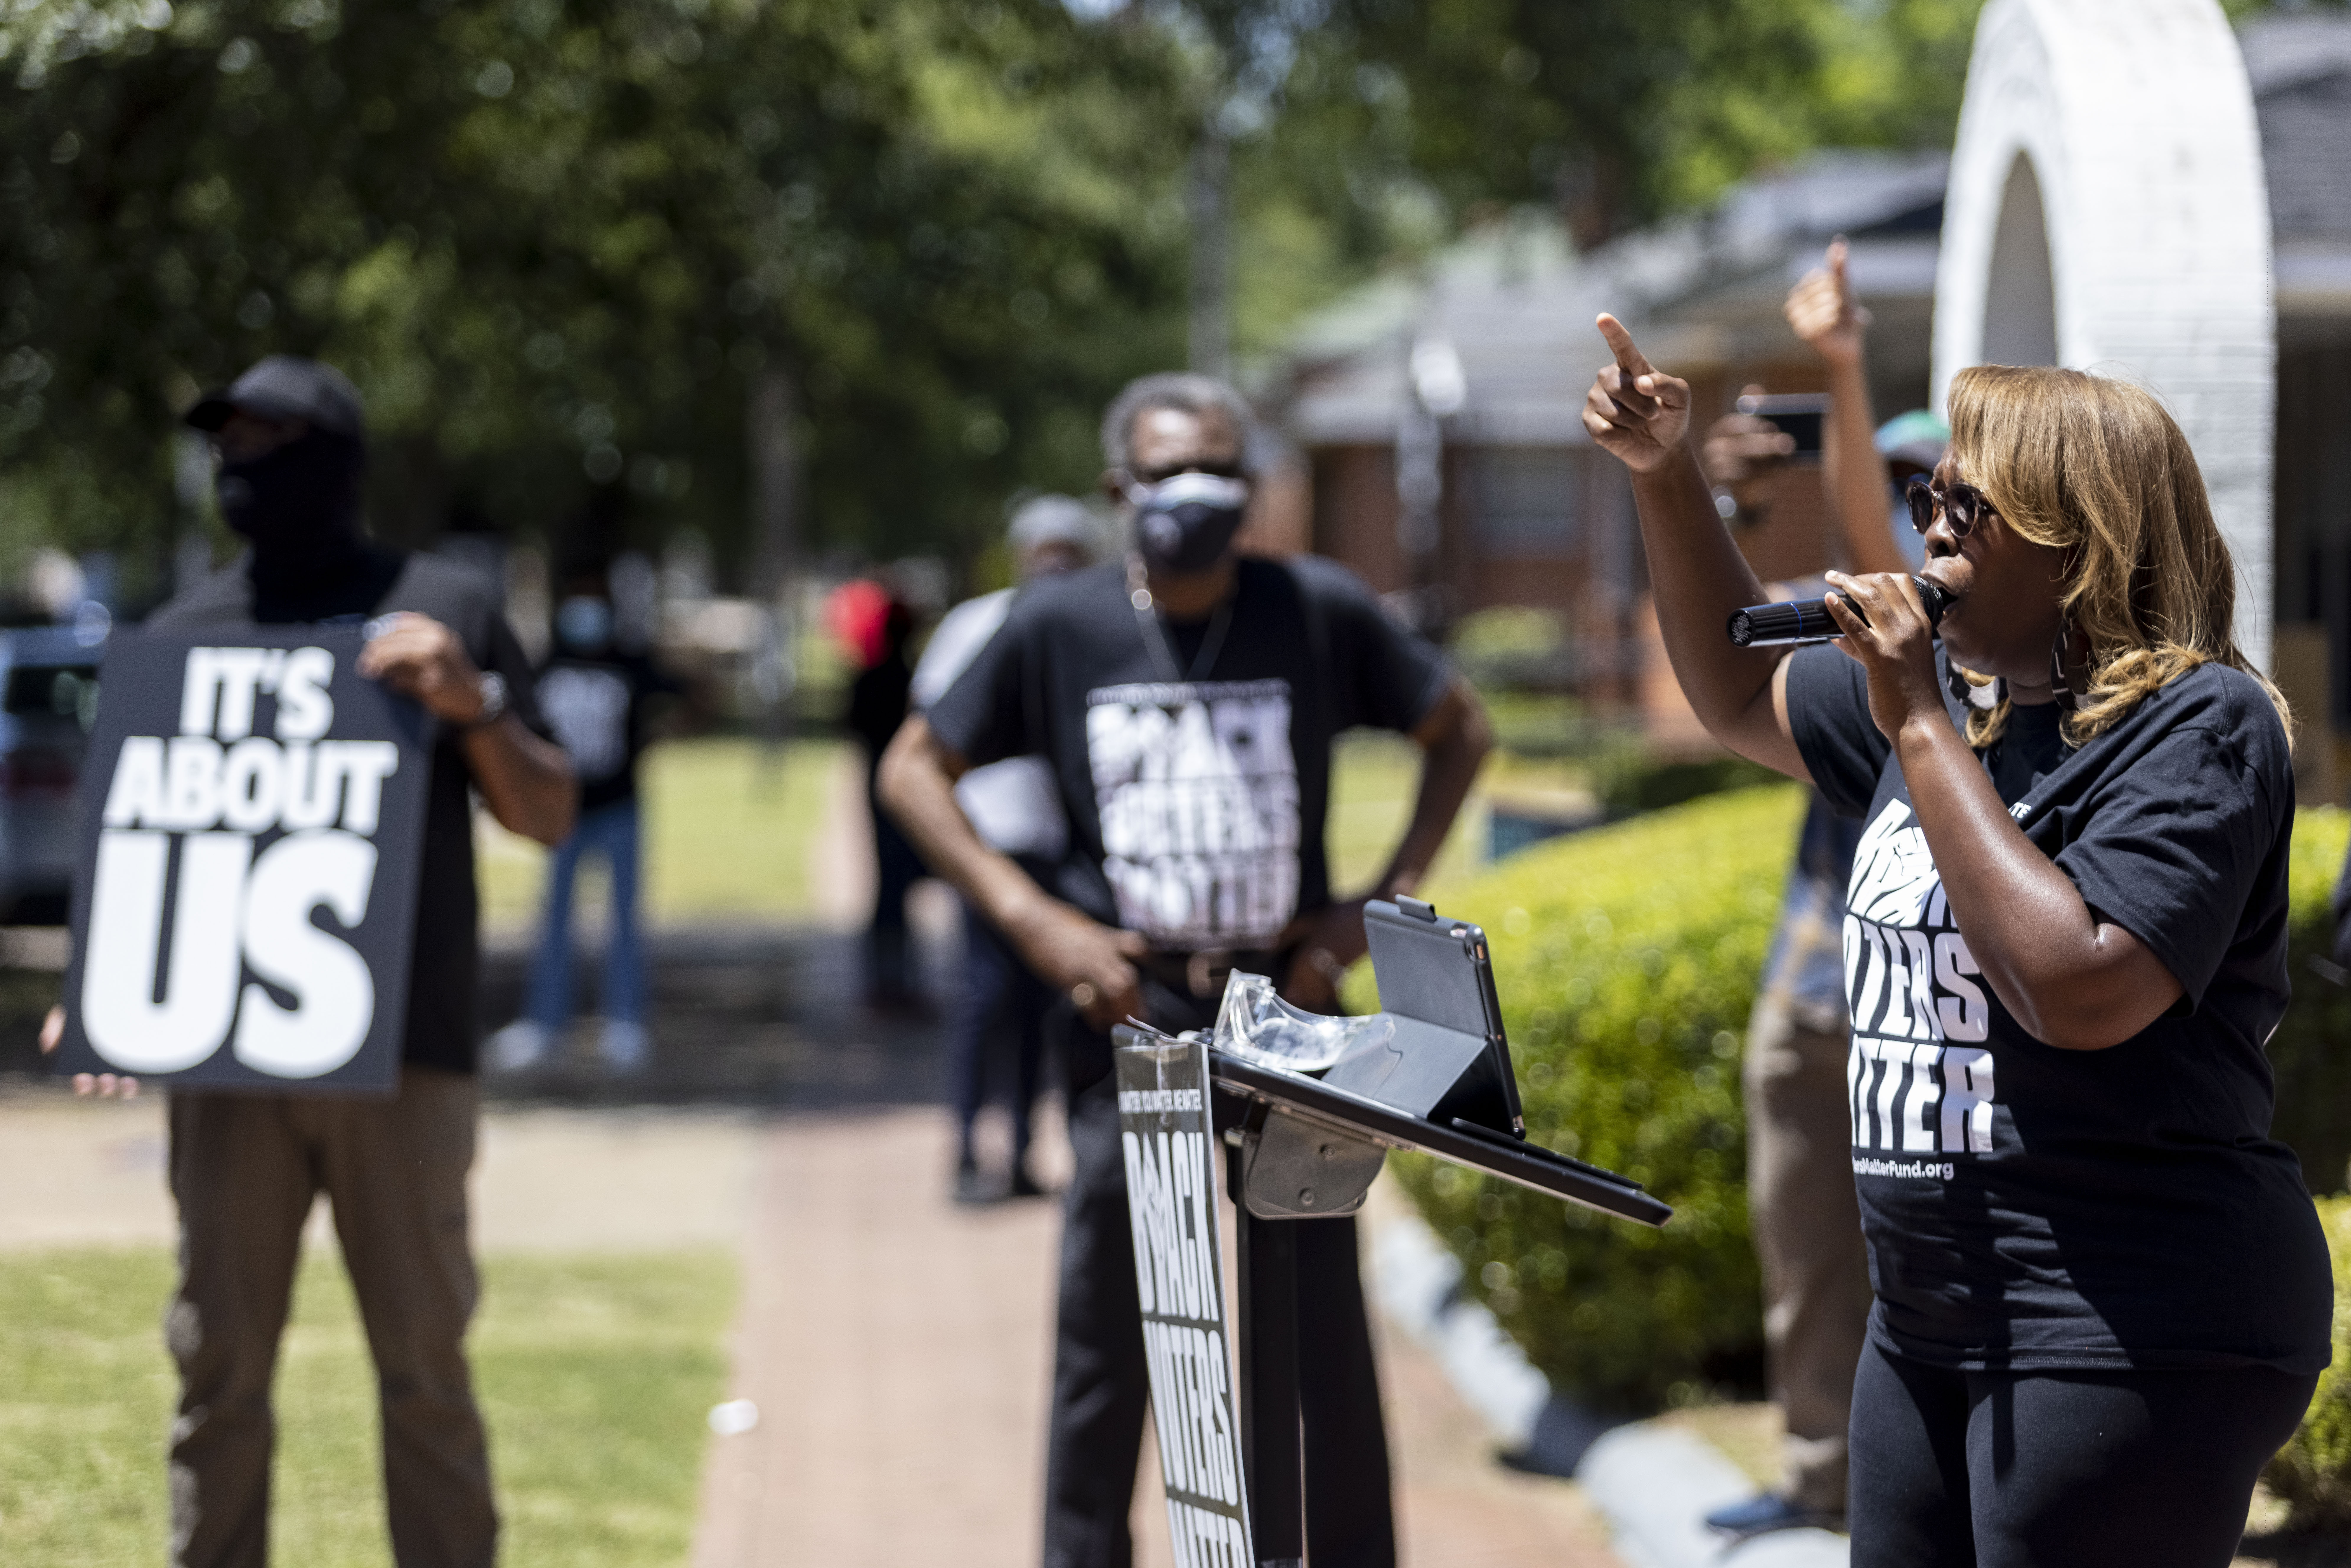 LaTosha Brown, co-founder of Black Voters Matter, speaks on voting rights at the John Lewis Advancement Act Day of Action, a voter education and engagement event, Saturday, May 8, 2021, in front of Brown Chapel A.M.E. Church in Selma, Ala.